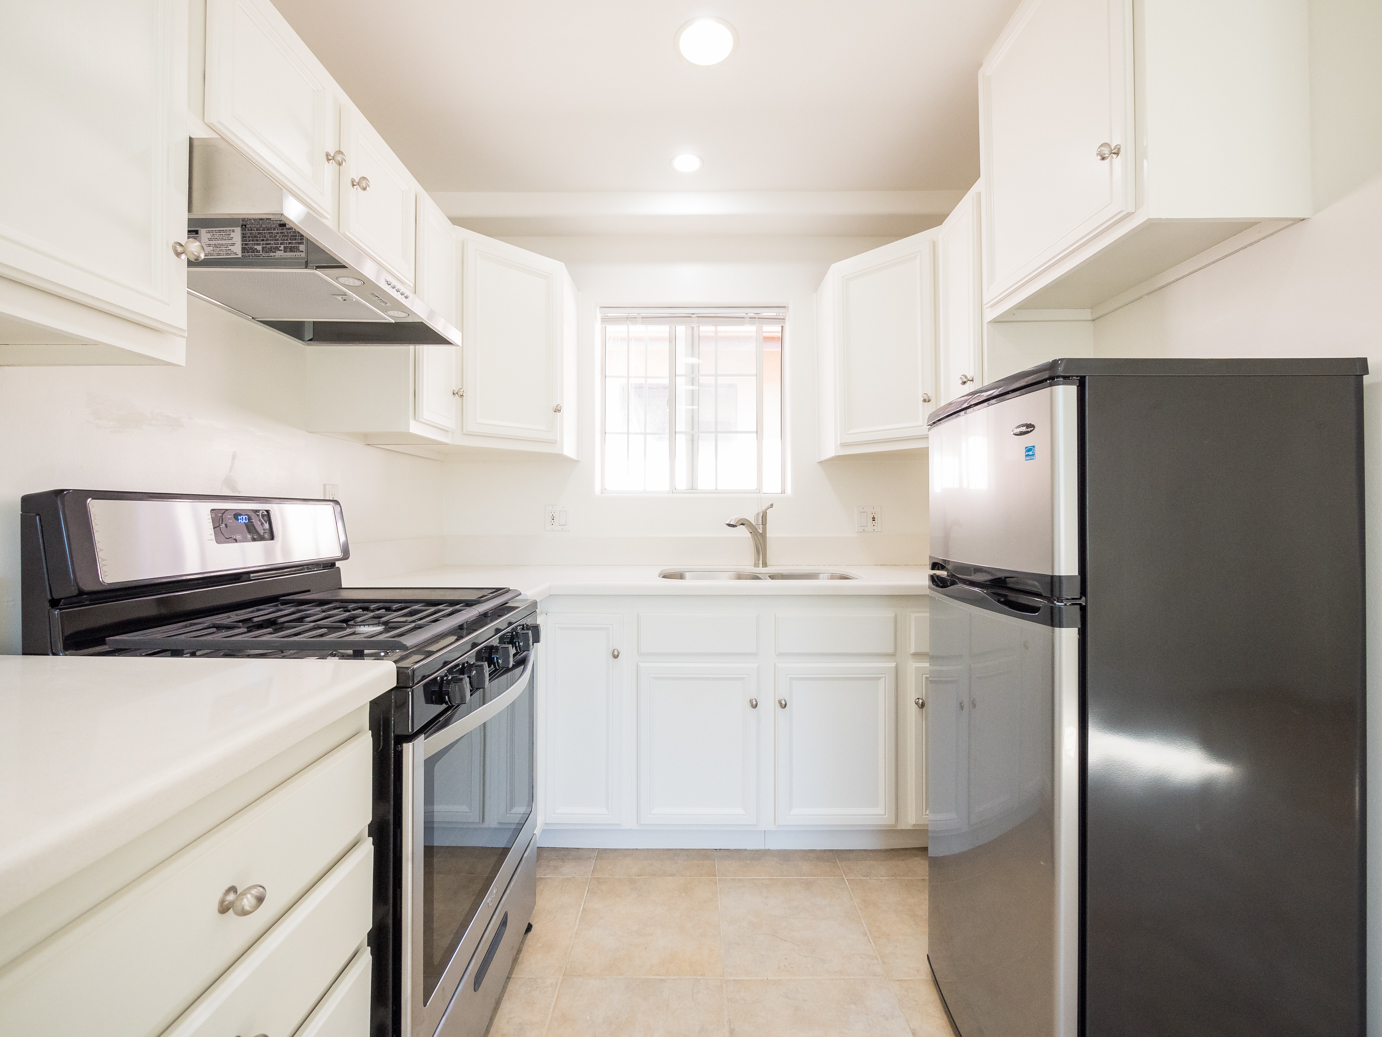 Bright and Airy Atwater Back House | Private yard and deck | Remodeled Throughout!